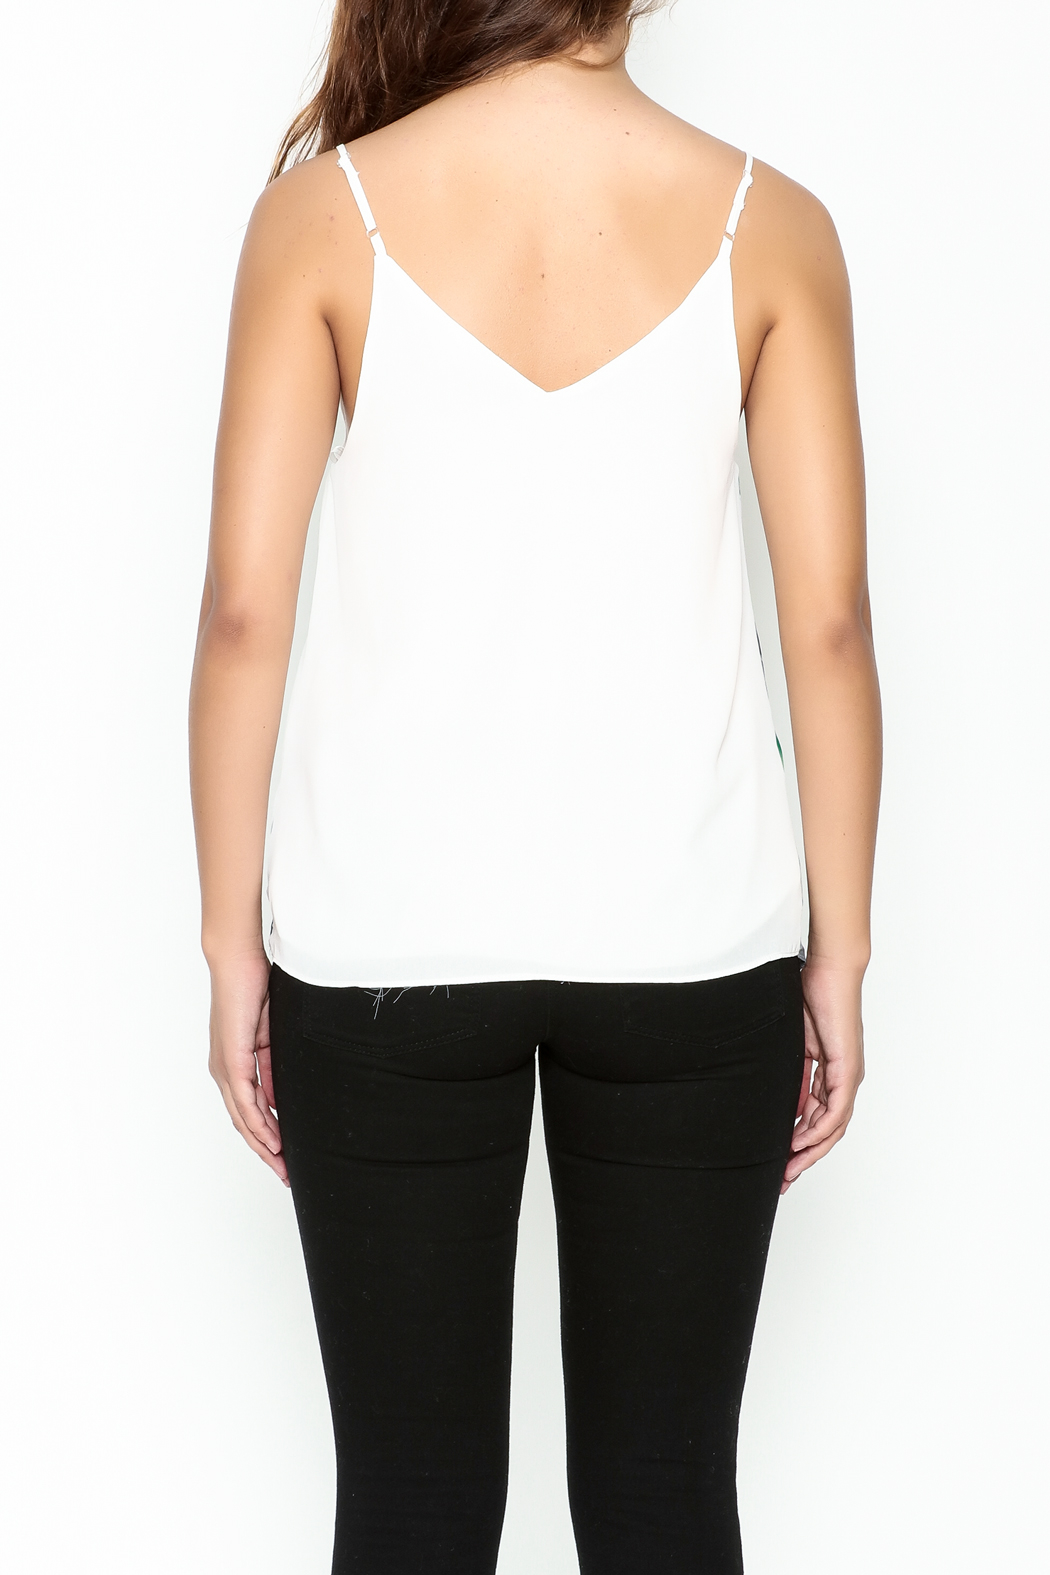 Marvy Fashion Printed Tank Top - Back Cropped Image